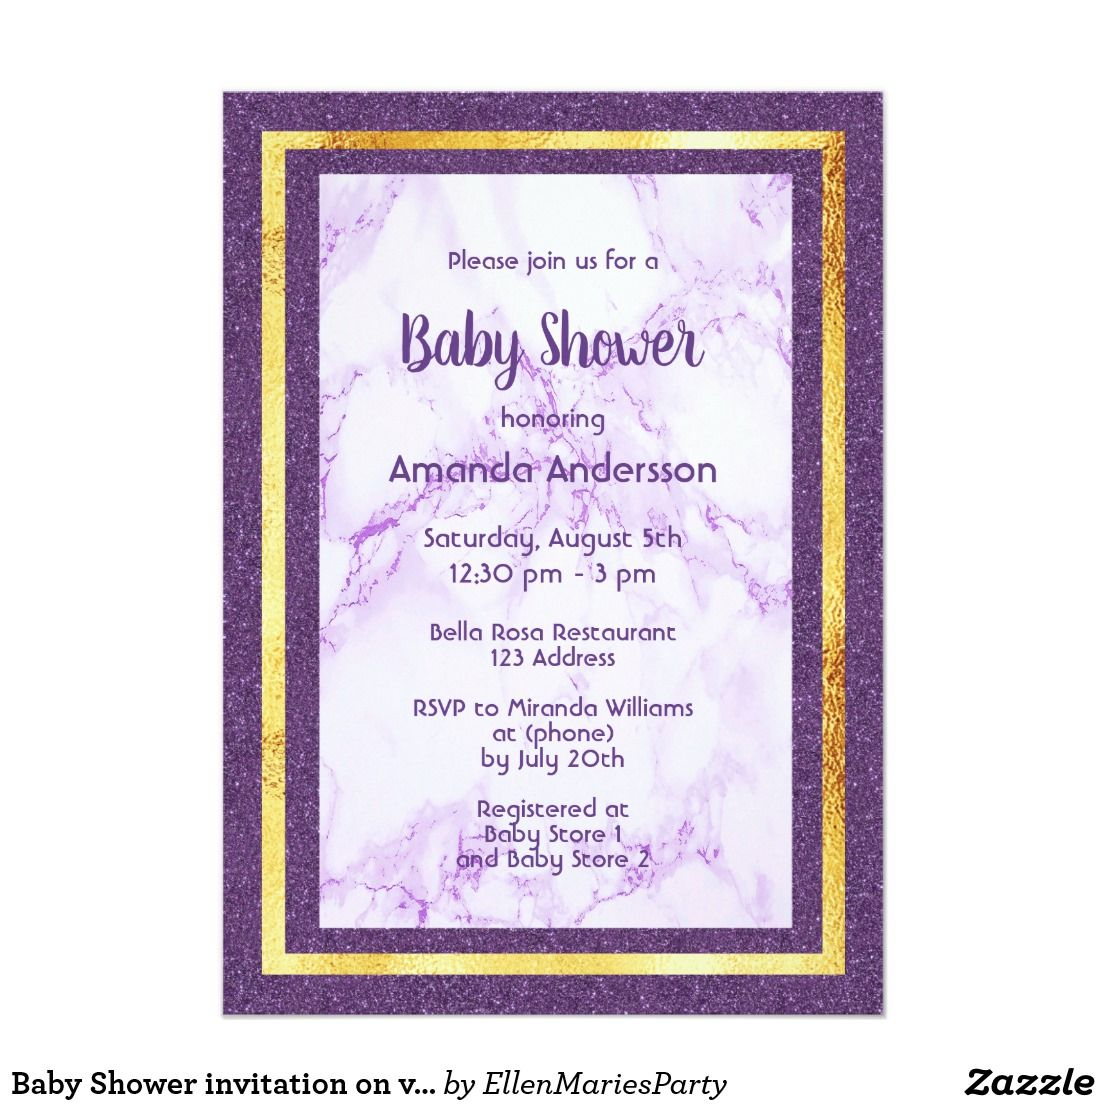 Baby Shower Invitation Letter Entrancing Baby Shower Invitation On Violet Marble Glitter  Elegant .